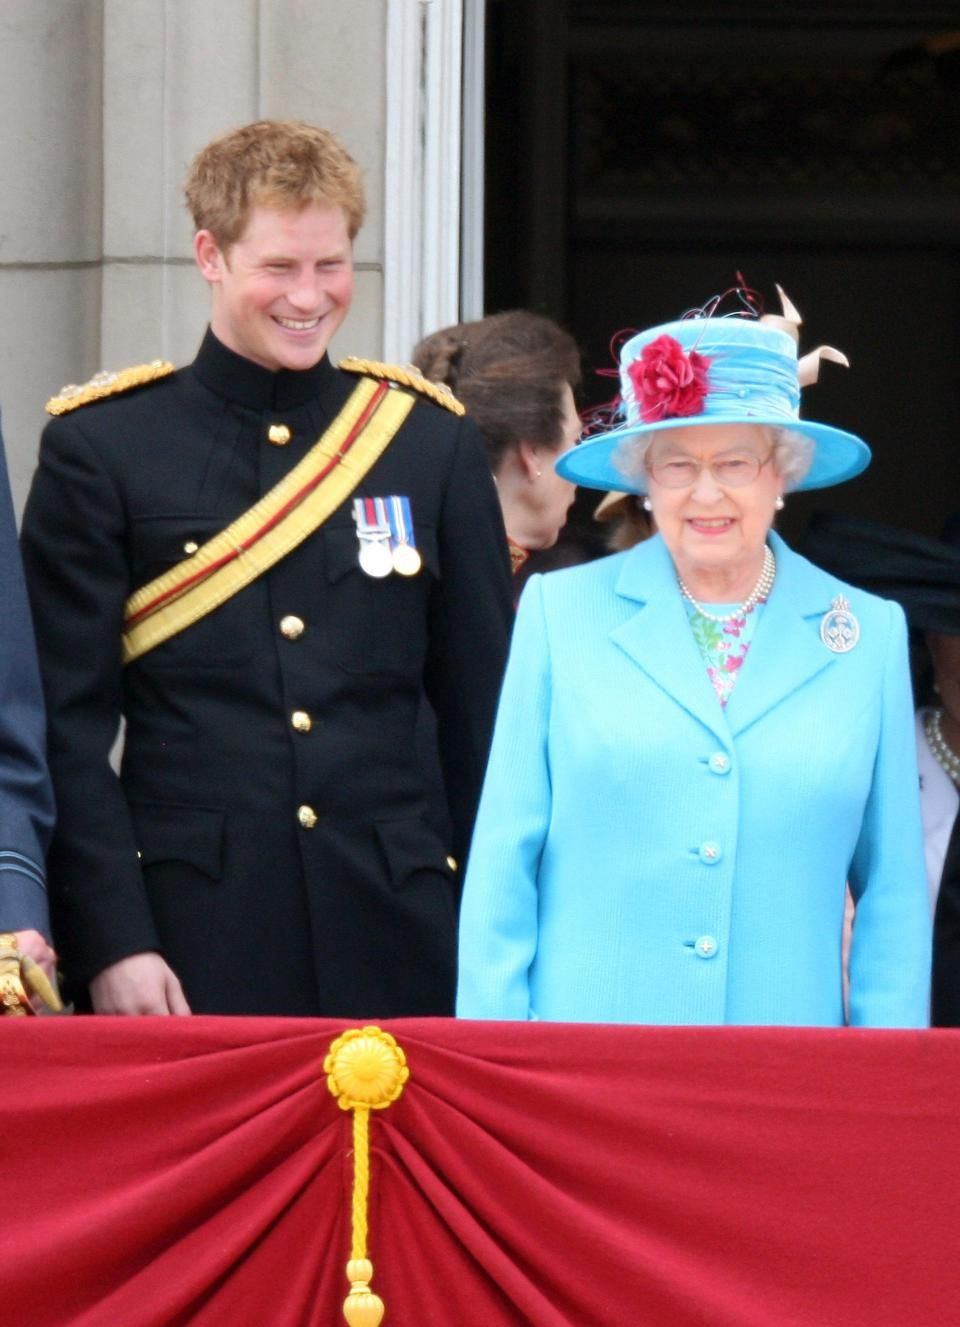 How old is Prince Harry and what is his official royal